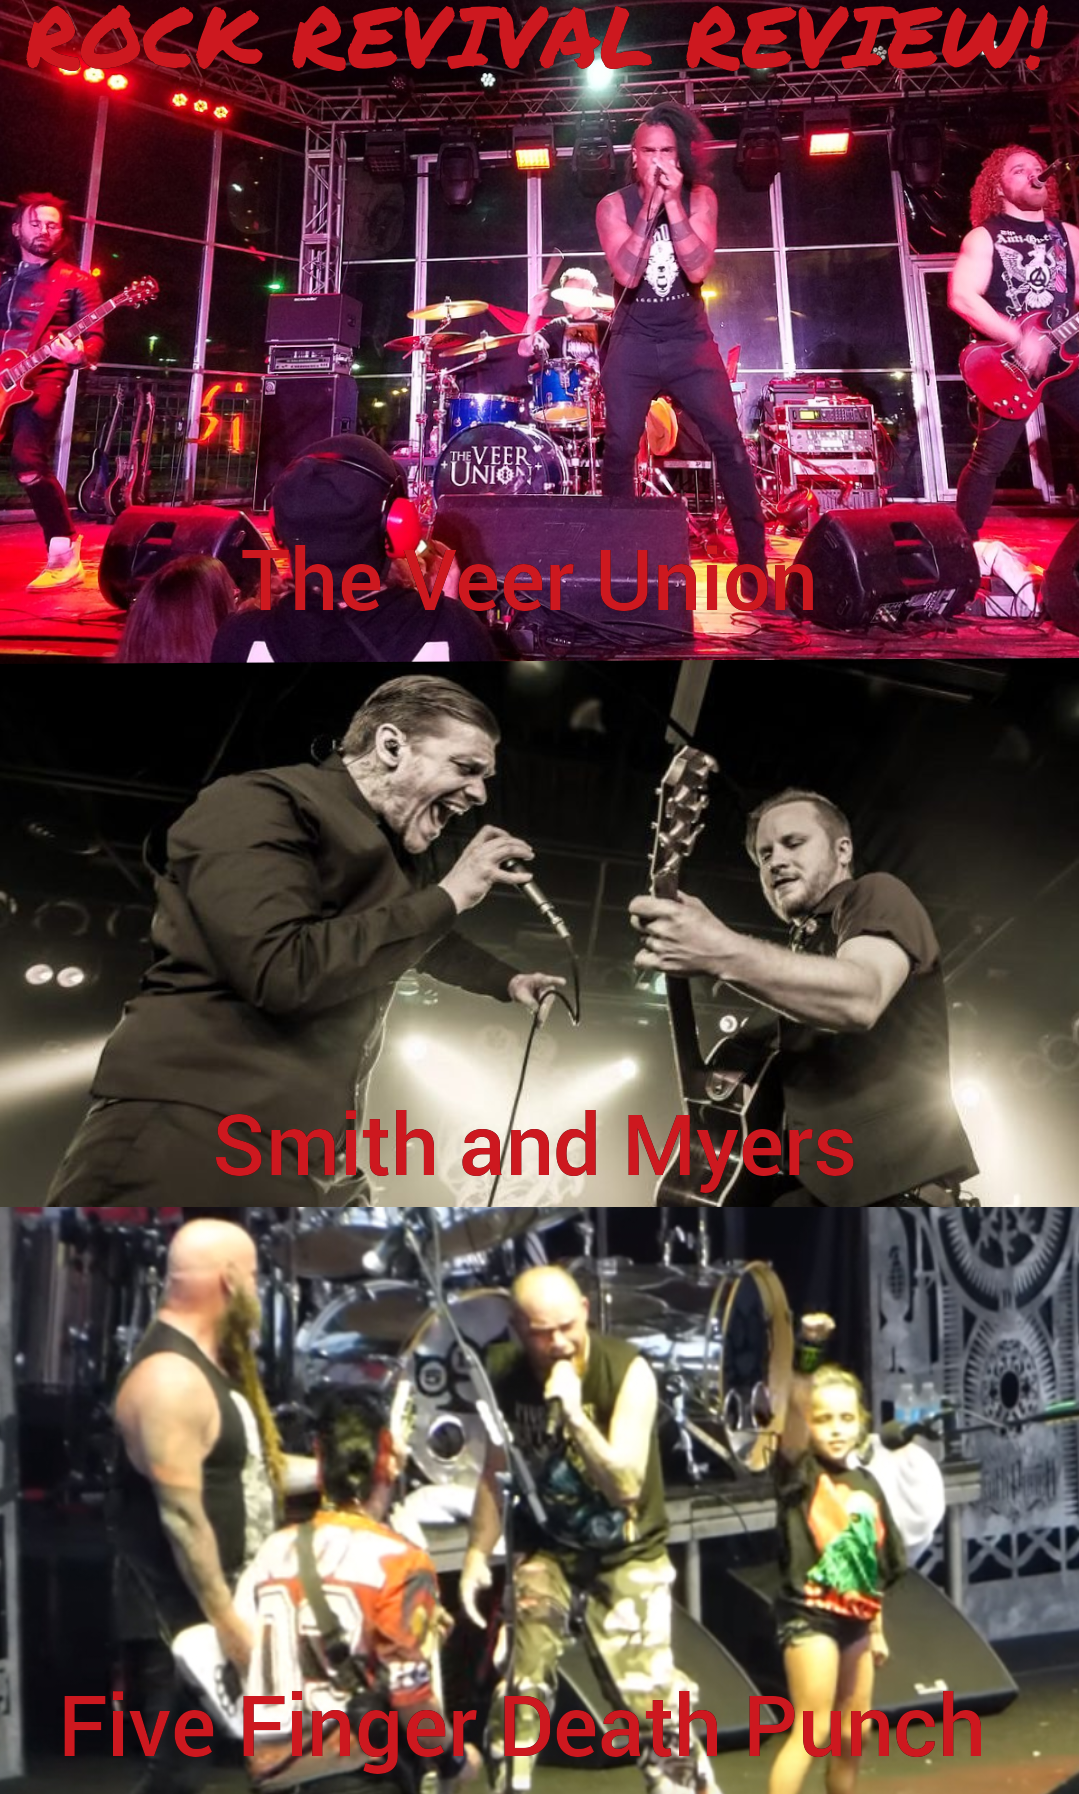 Rock Revival Review:The Veer Union, Smith and Myers, & Five Finger Death Punch